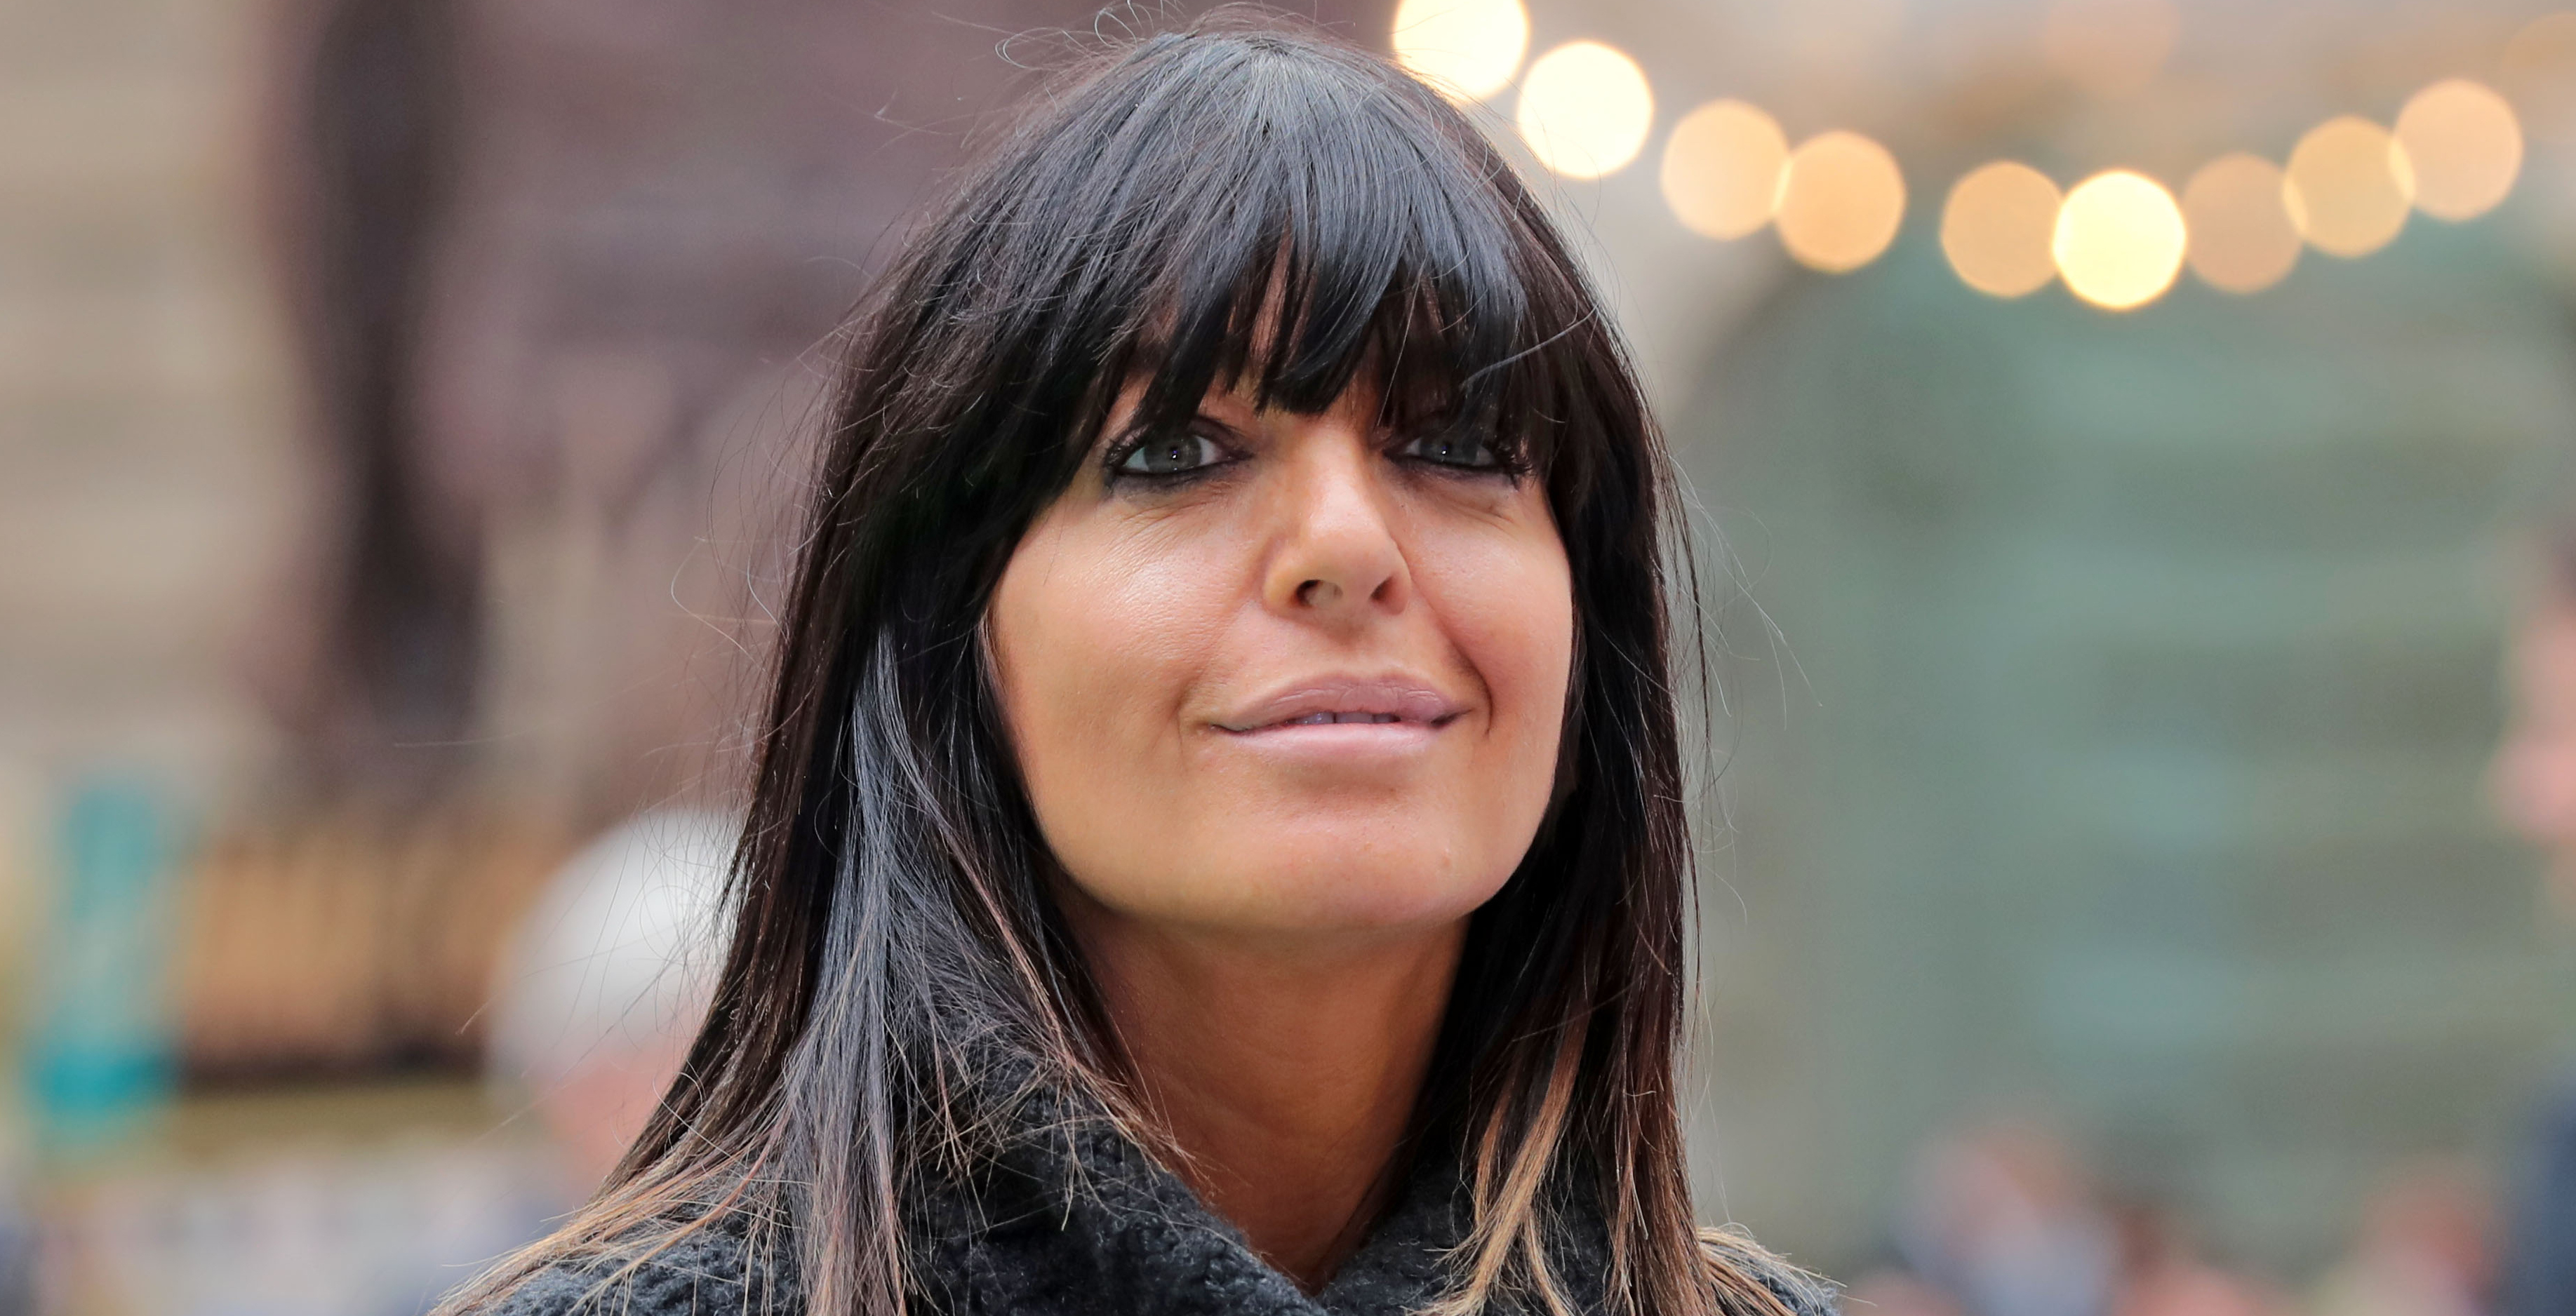 Claudia Winkleman reveals she was 'saved' by psychologist pal after traumatic family incident